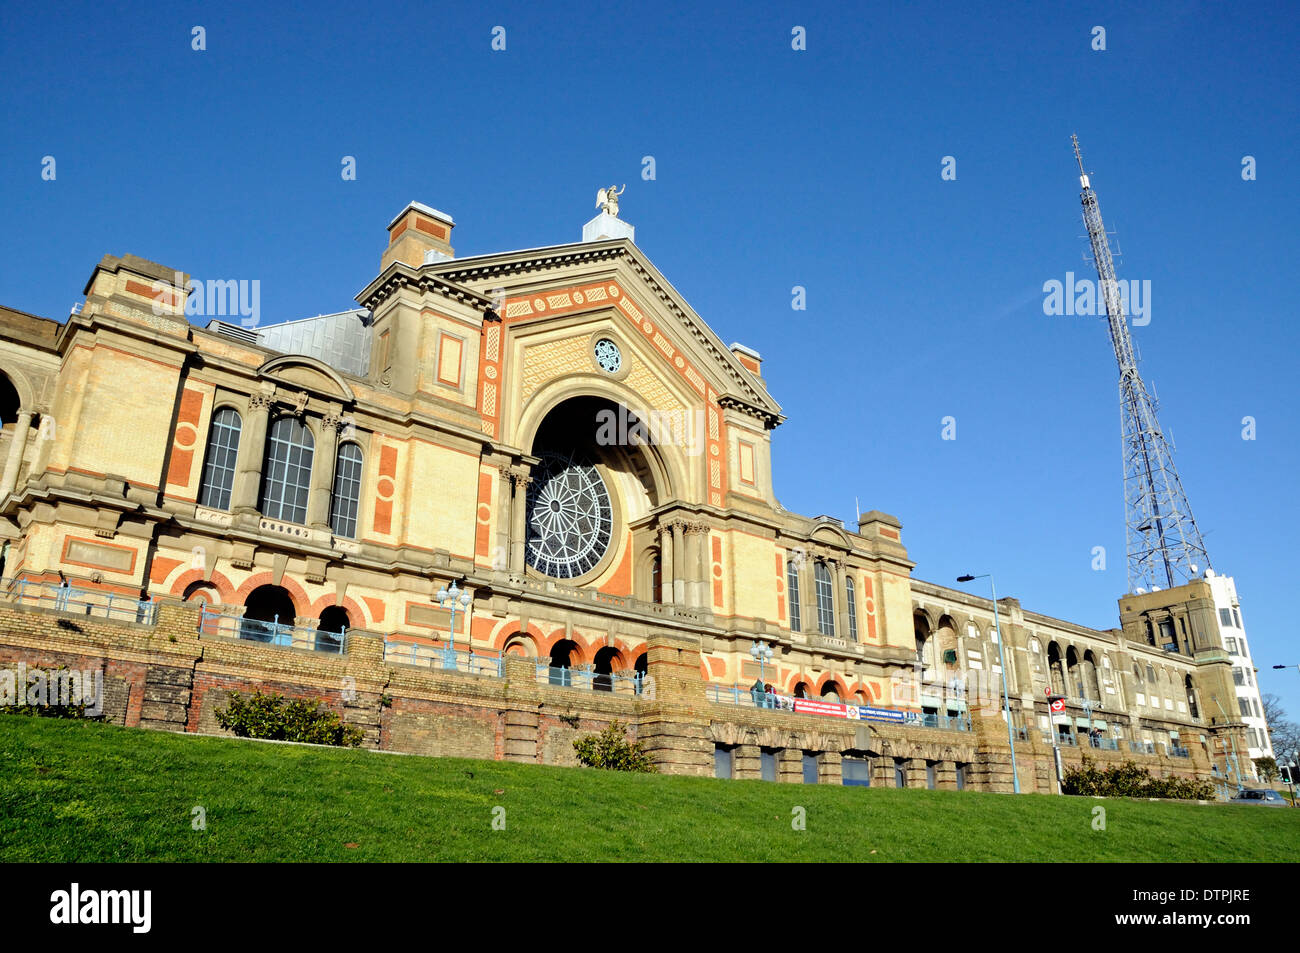 Alexandra Palace with television transmitter, London Borough of Haringey, England UK - Stock Image